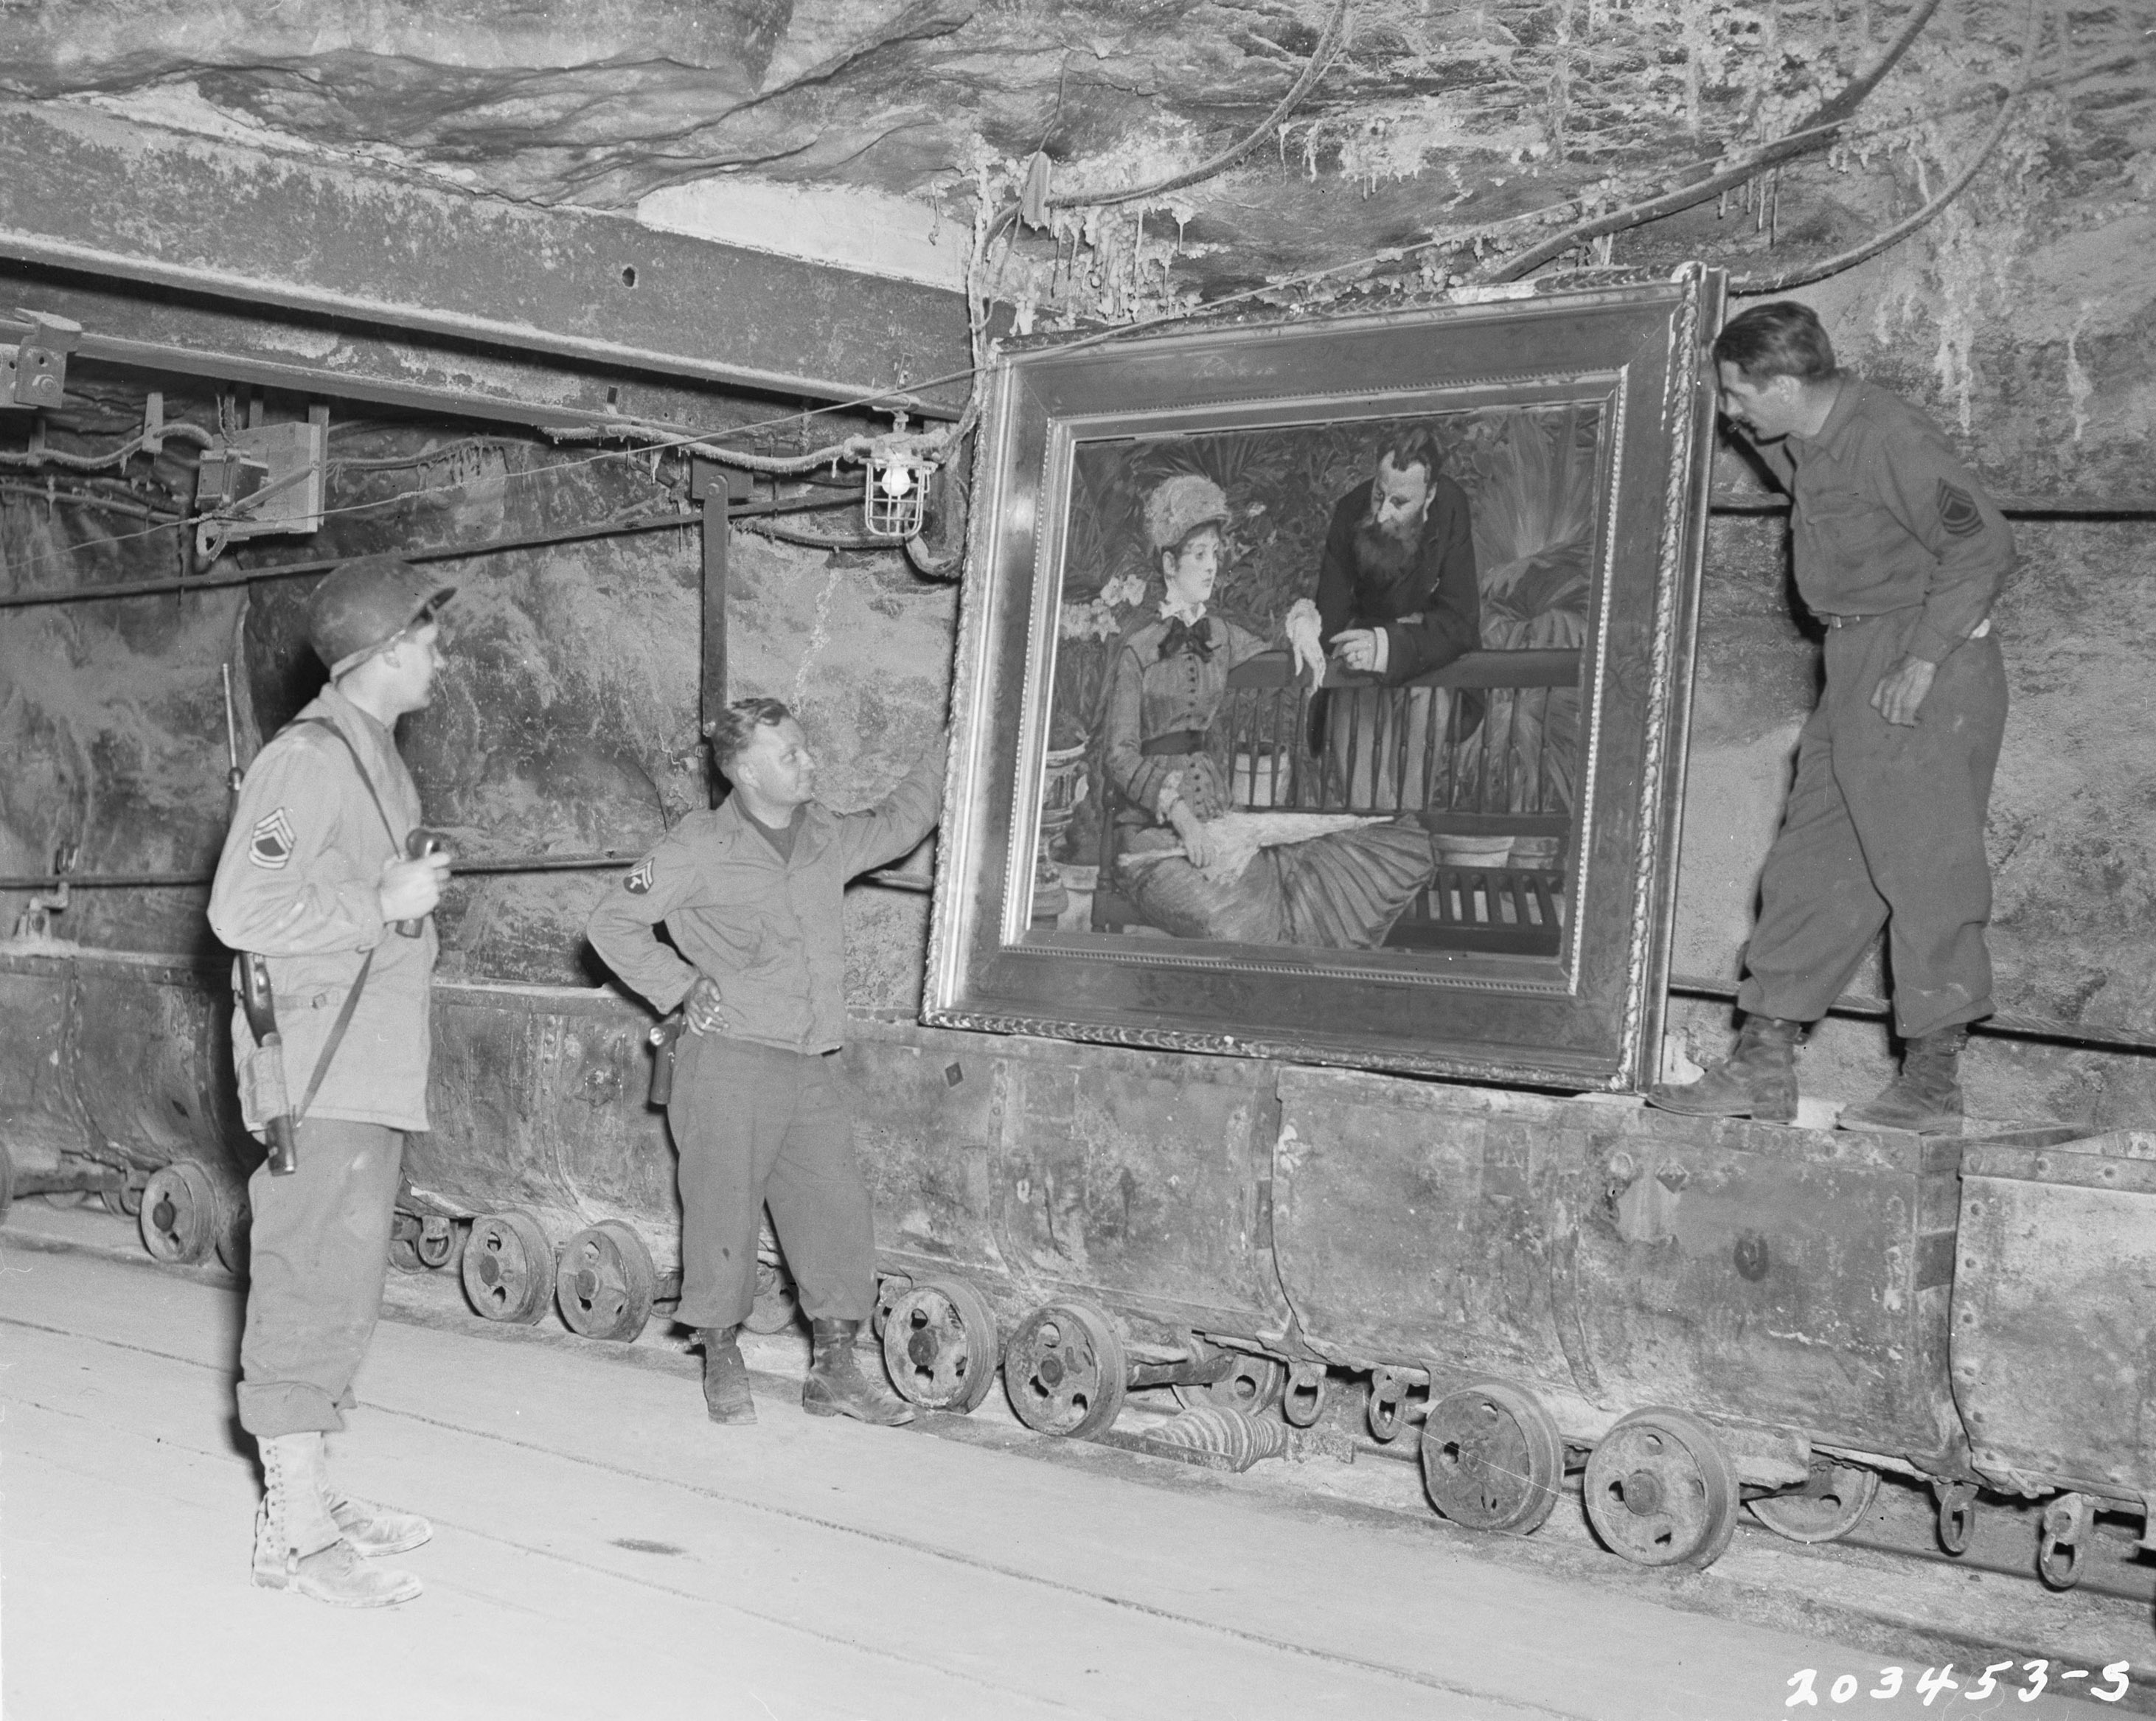 American GIs, including Sgt. Henry Hartung to the left of the painting, admire a masterpiece by Edourard Manet, stored in Merkers salt mine during WWII. This painting from Kaiser-Friderich Museum in Berlin, had been brought to the mine for safekeeping. (Photo credit: National Archives and Records Administration, College Park, MD / Public Domain)